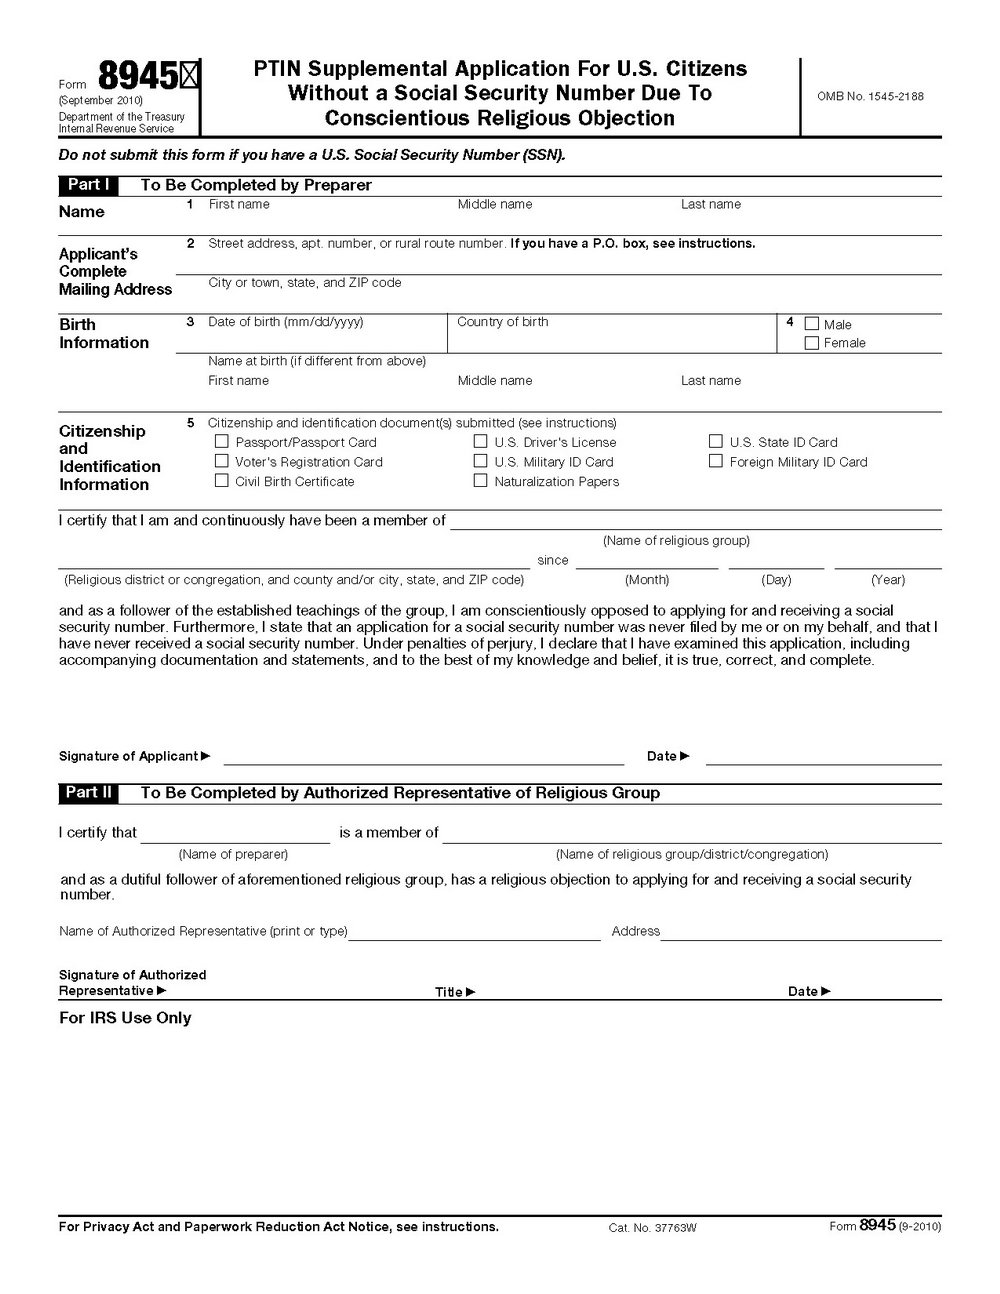 Ssi Application Form For A Child